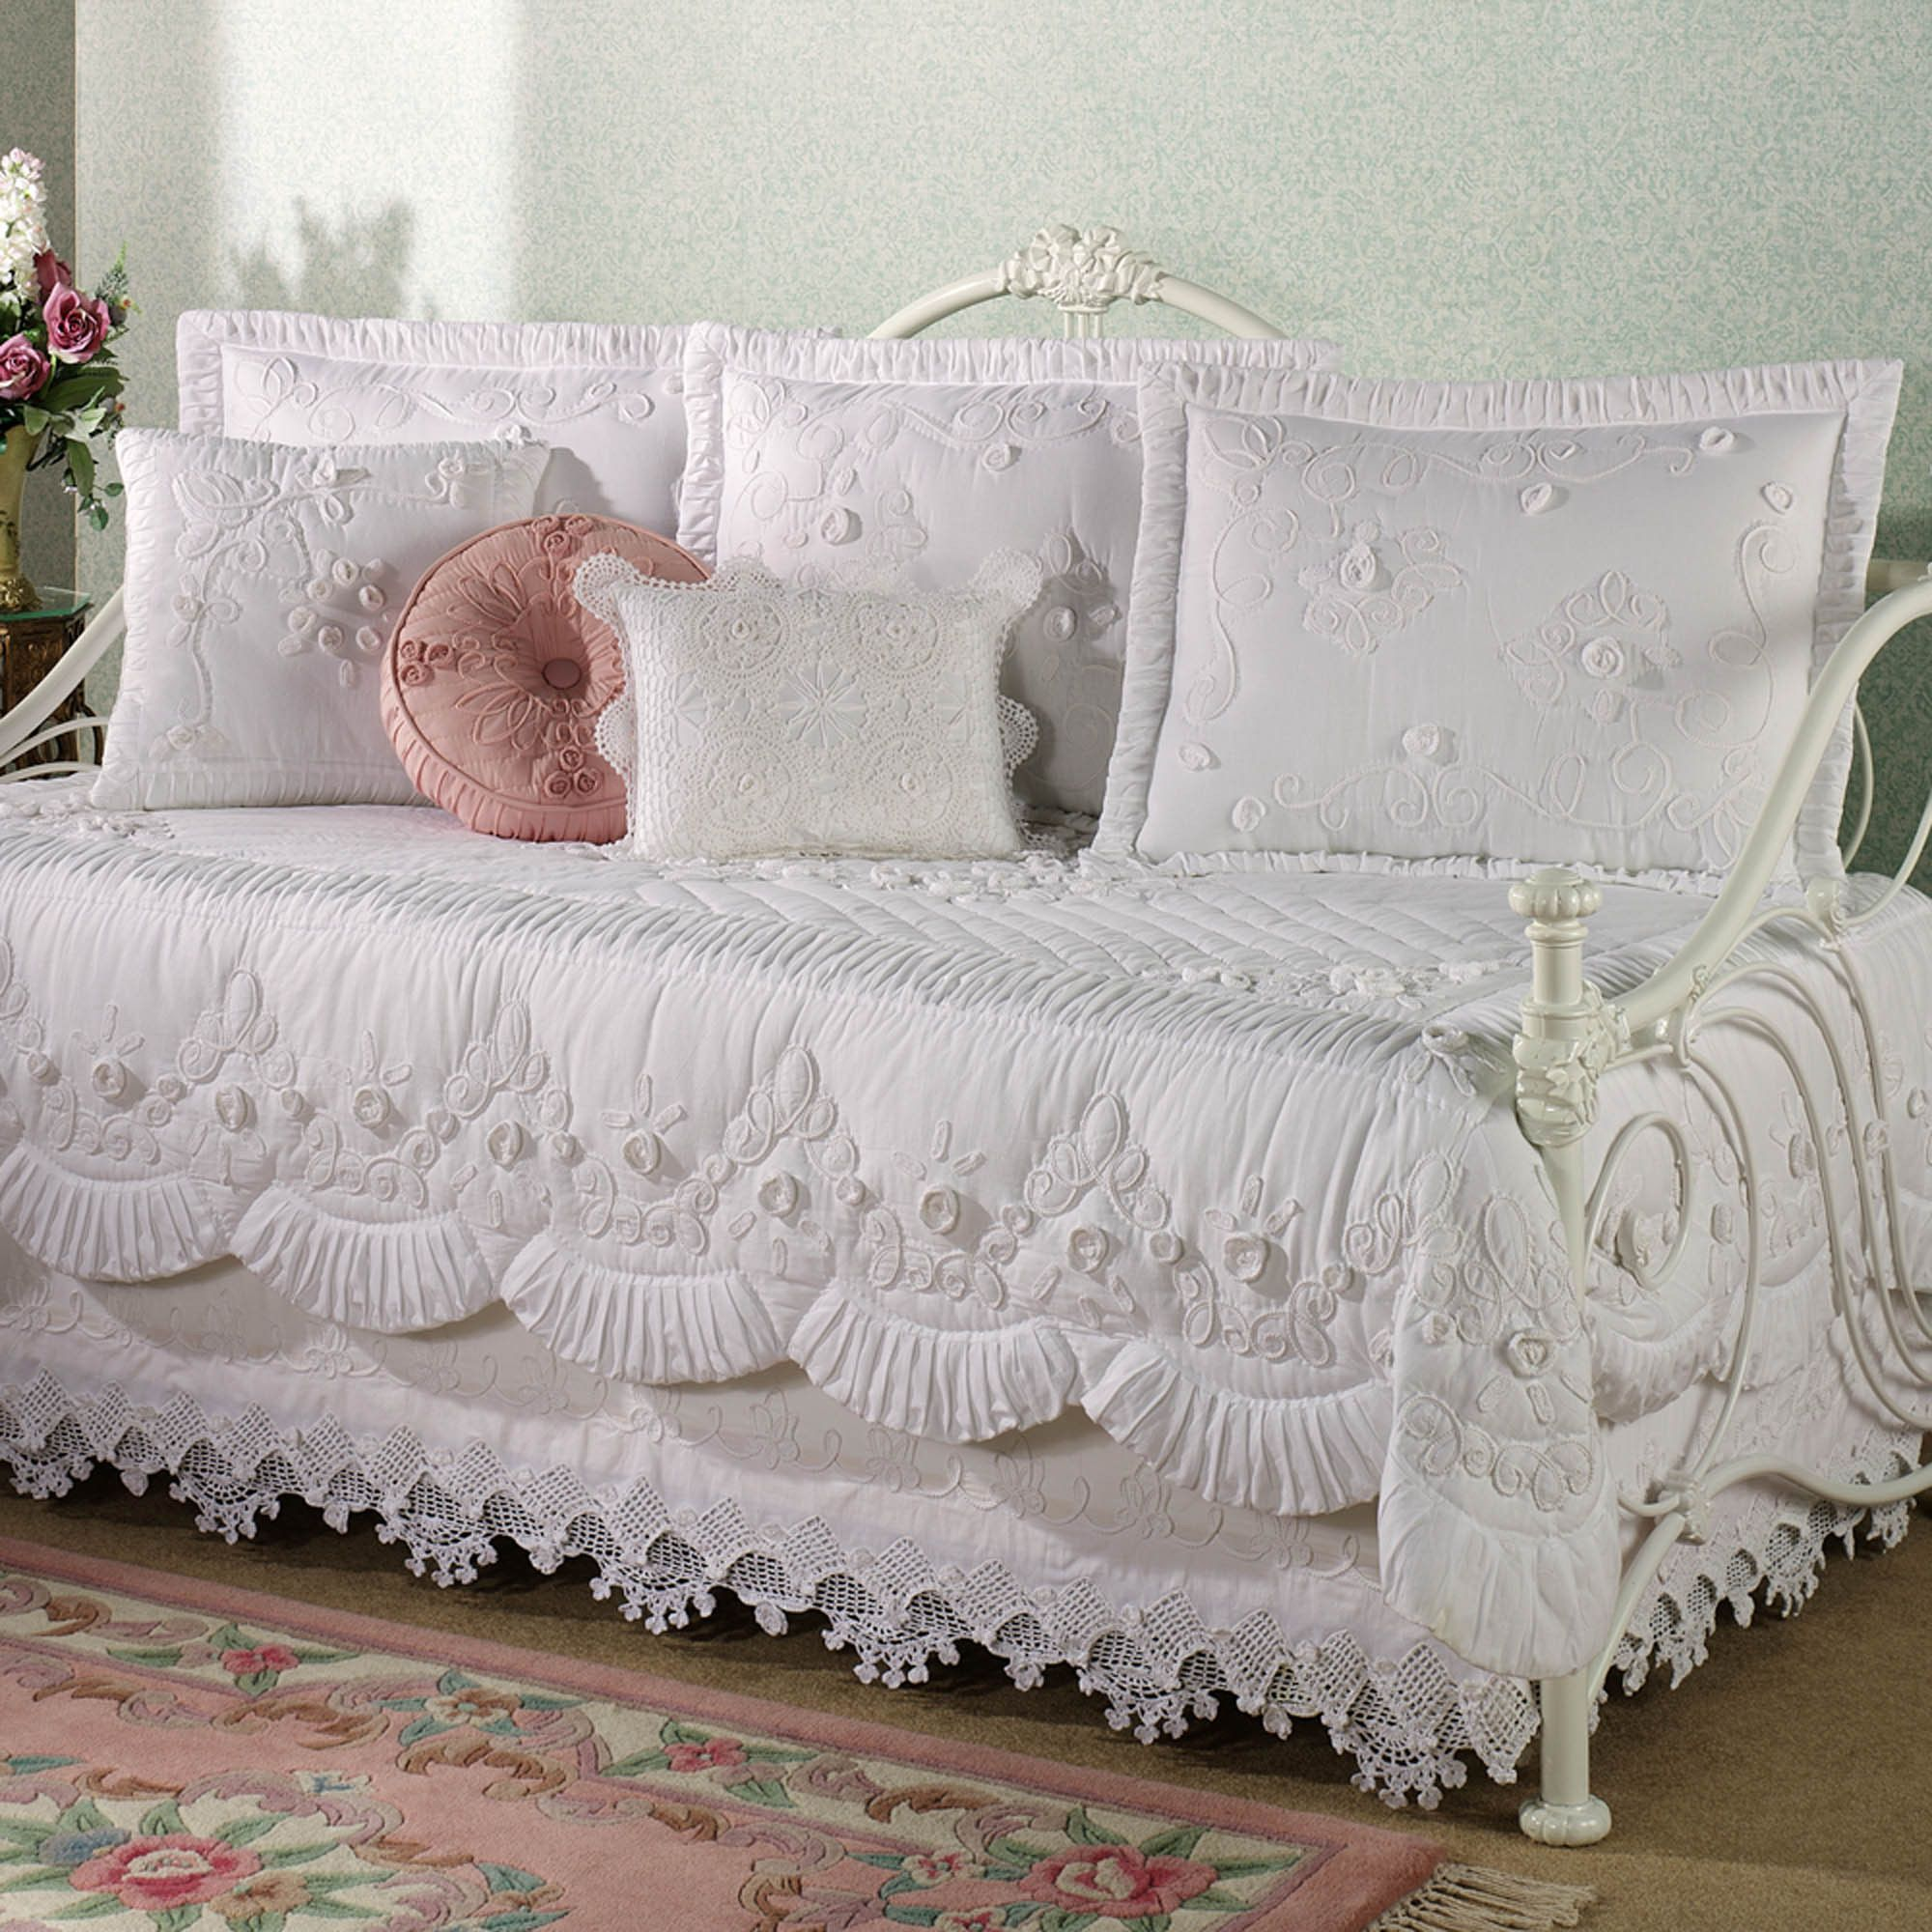 Tranquil Garden Daybed Cover Bedding Victorian Pinterest